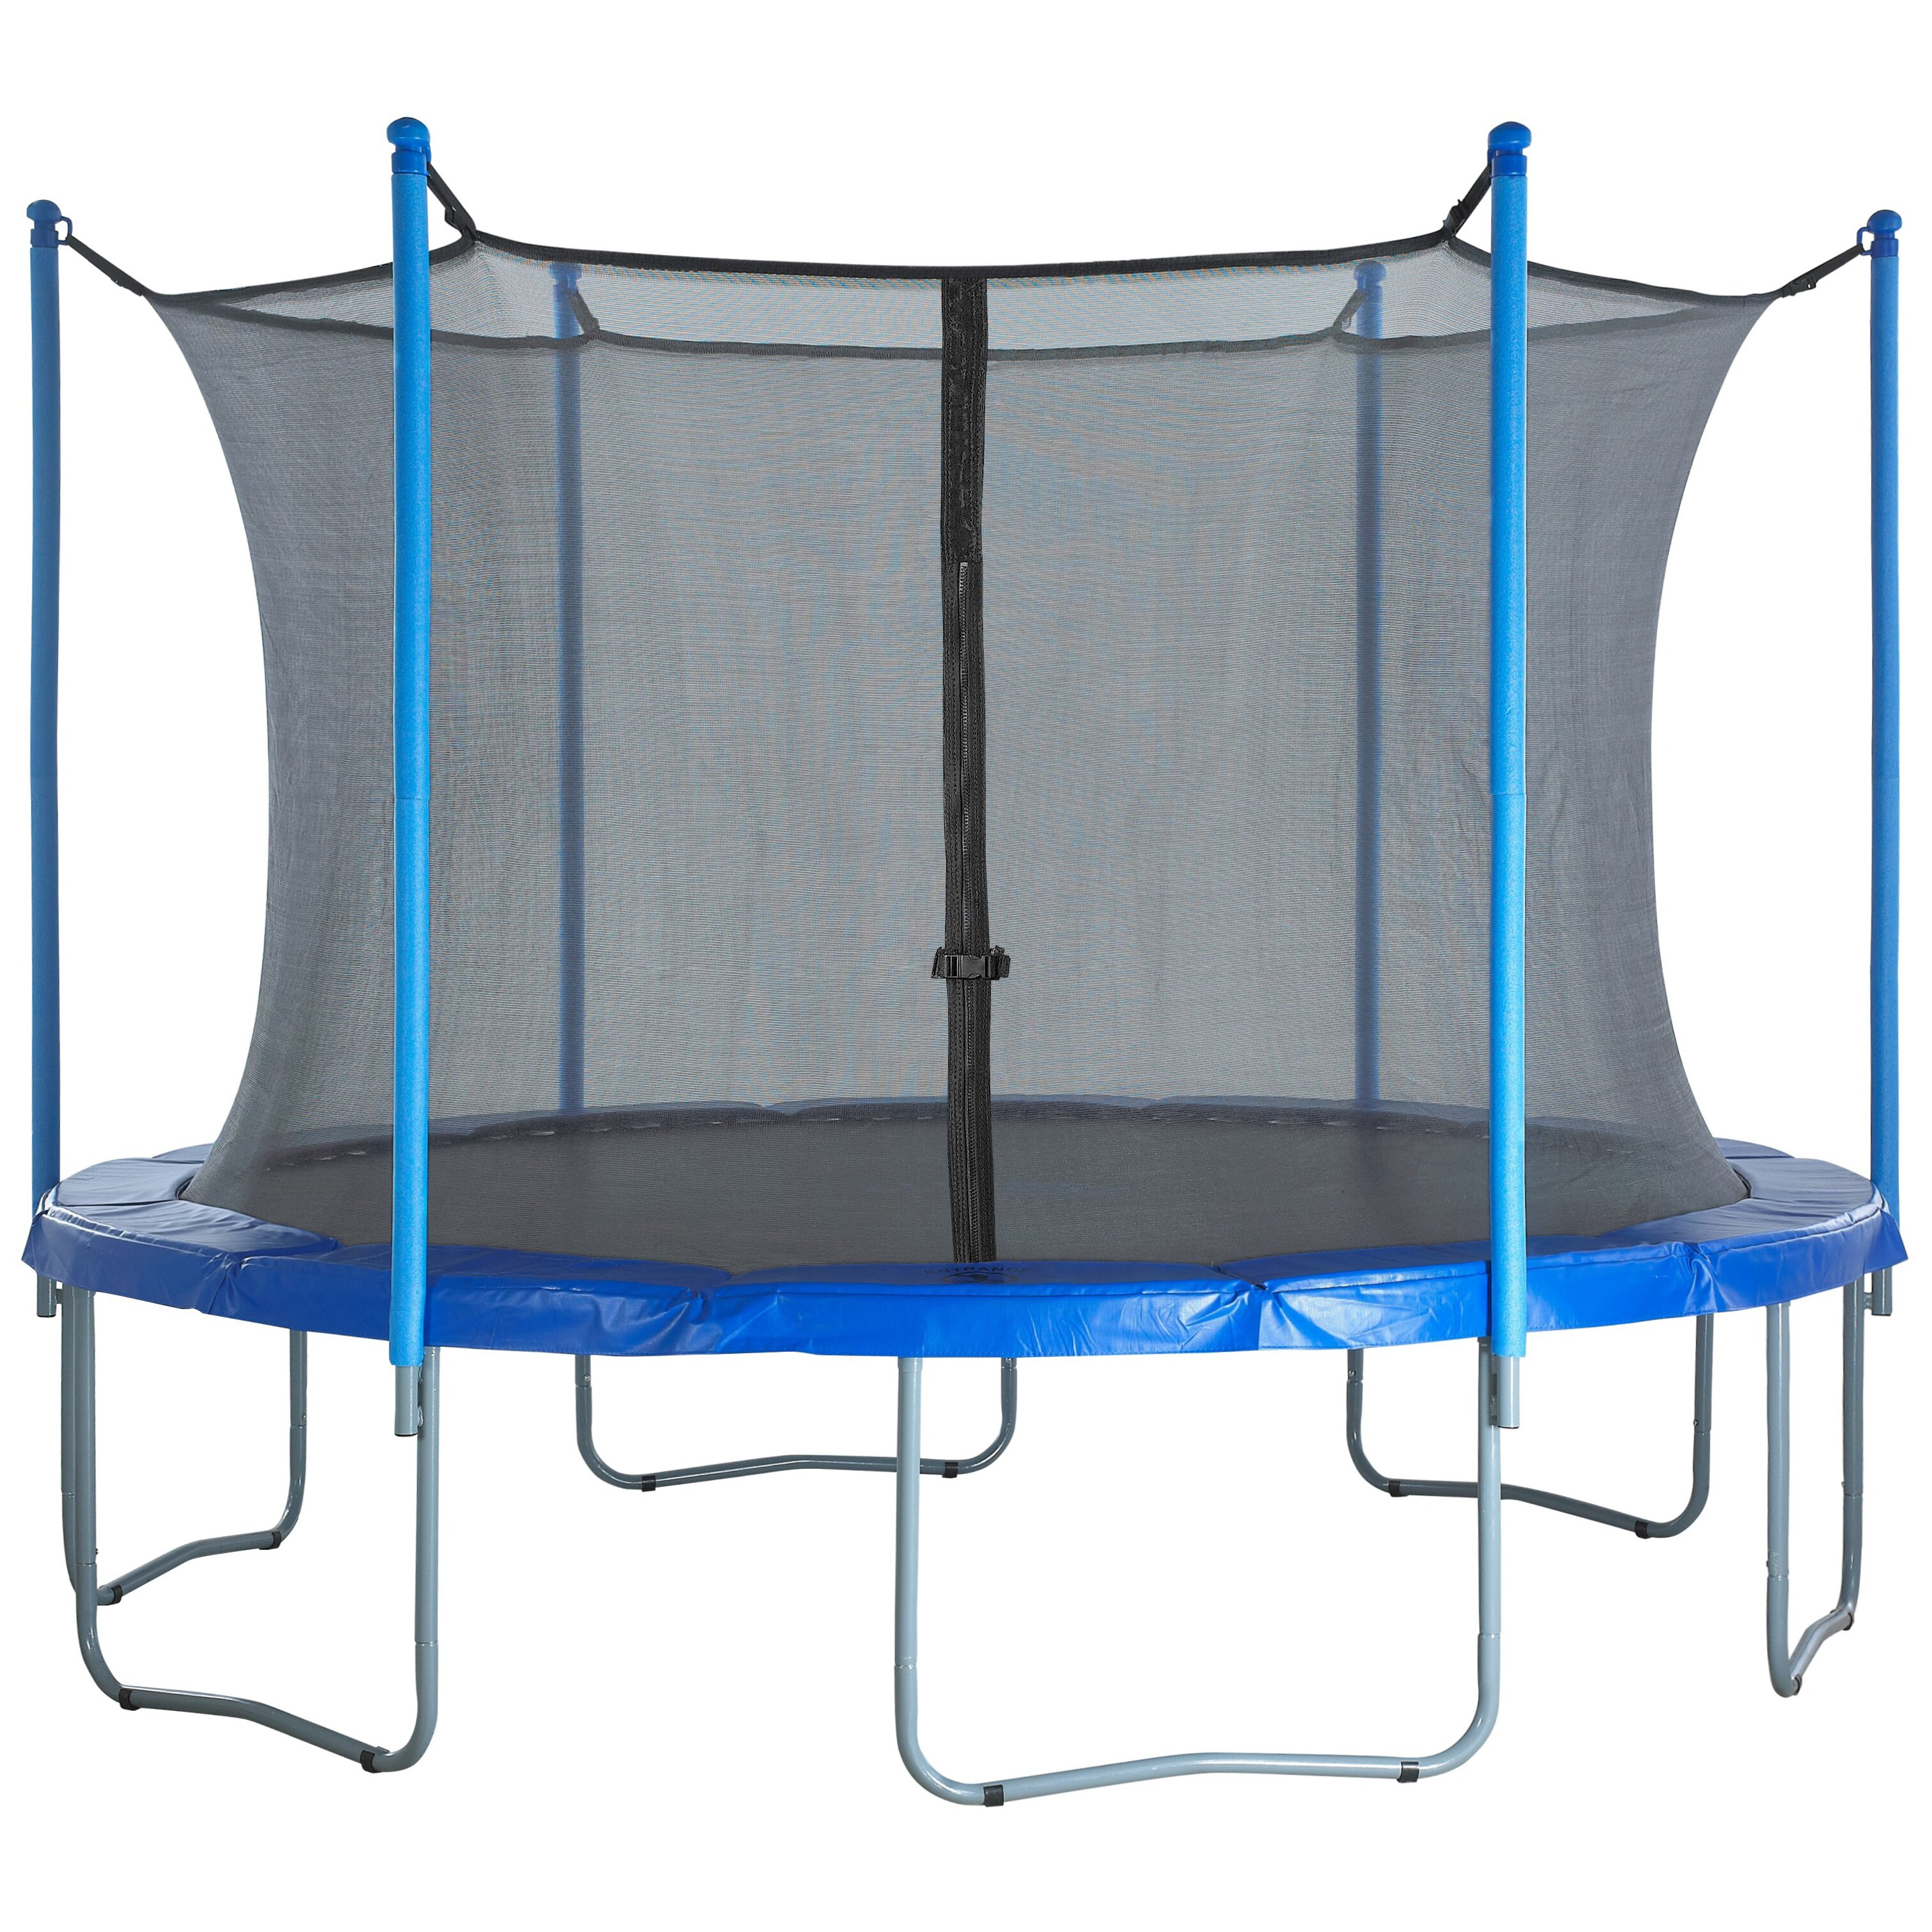 Upper Bounce 15' Round Trampoline Net Using 6 Poles Or 3